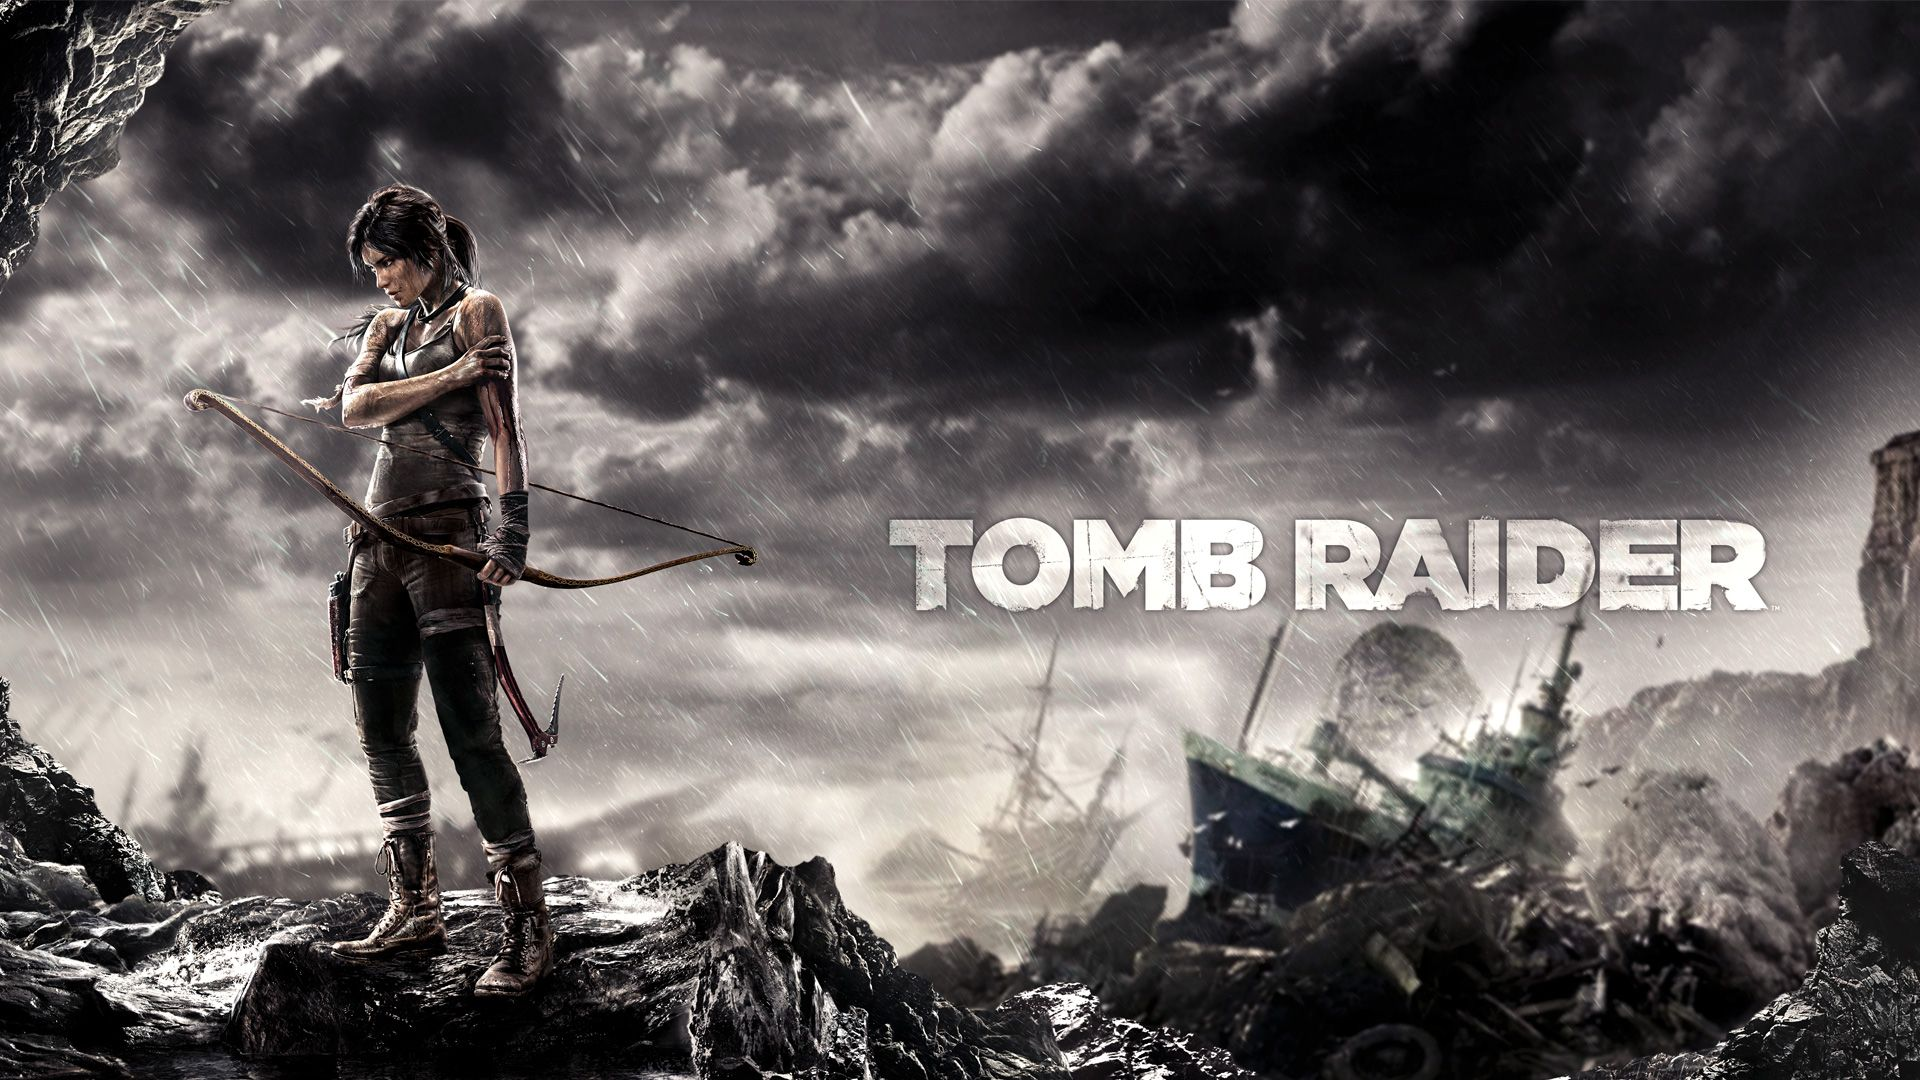 Rise Of The Tomb Raider Pictures Is Cool Wallpapers Tomb Raider Tomb Raider Game Tomb Raider Wallpaper